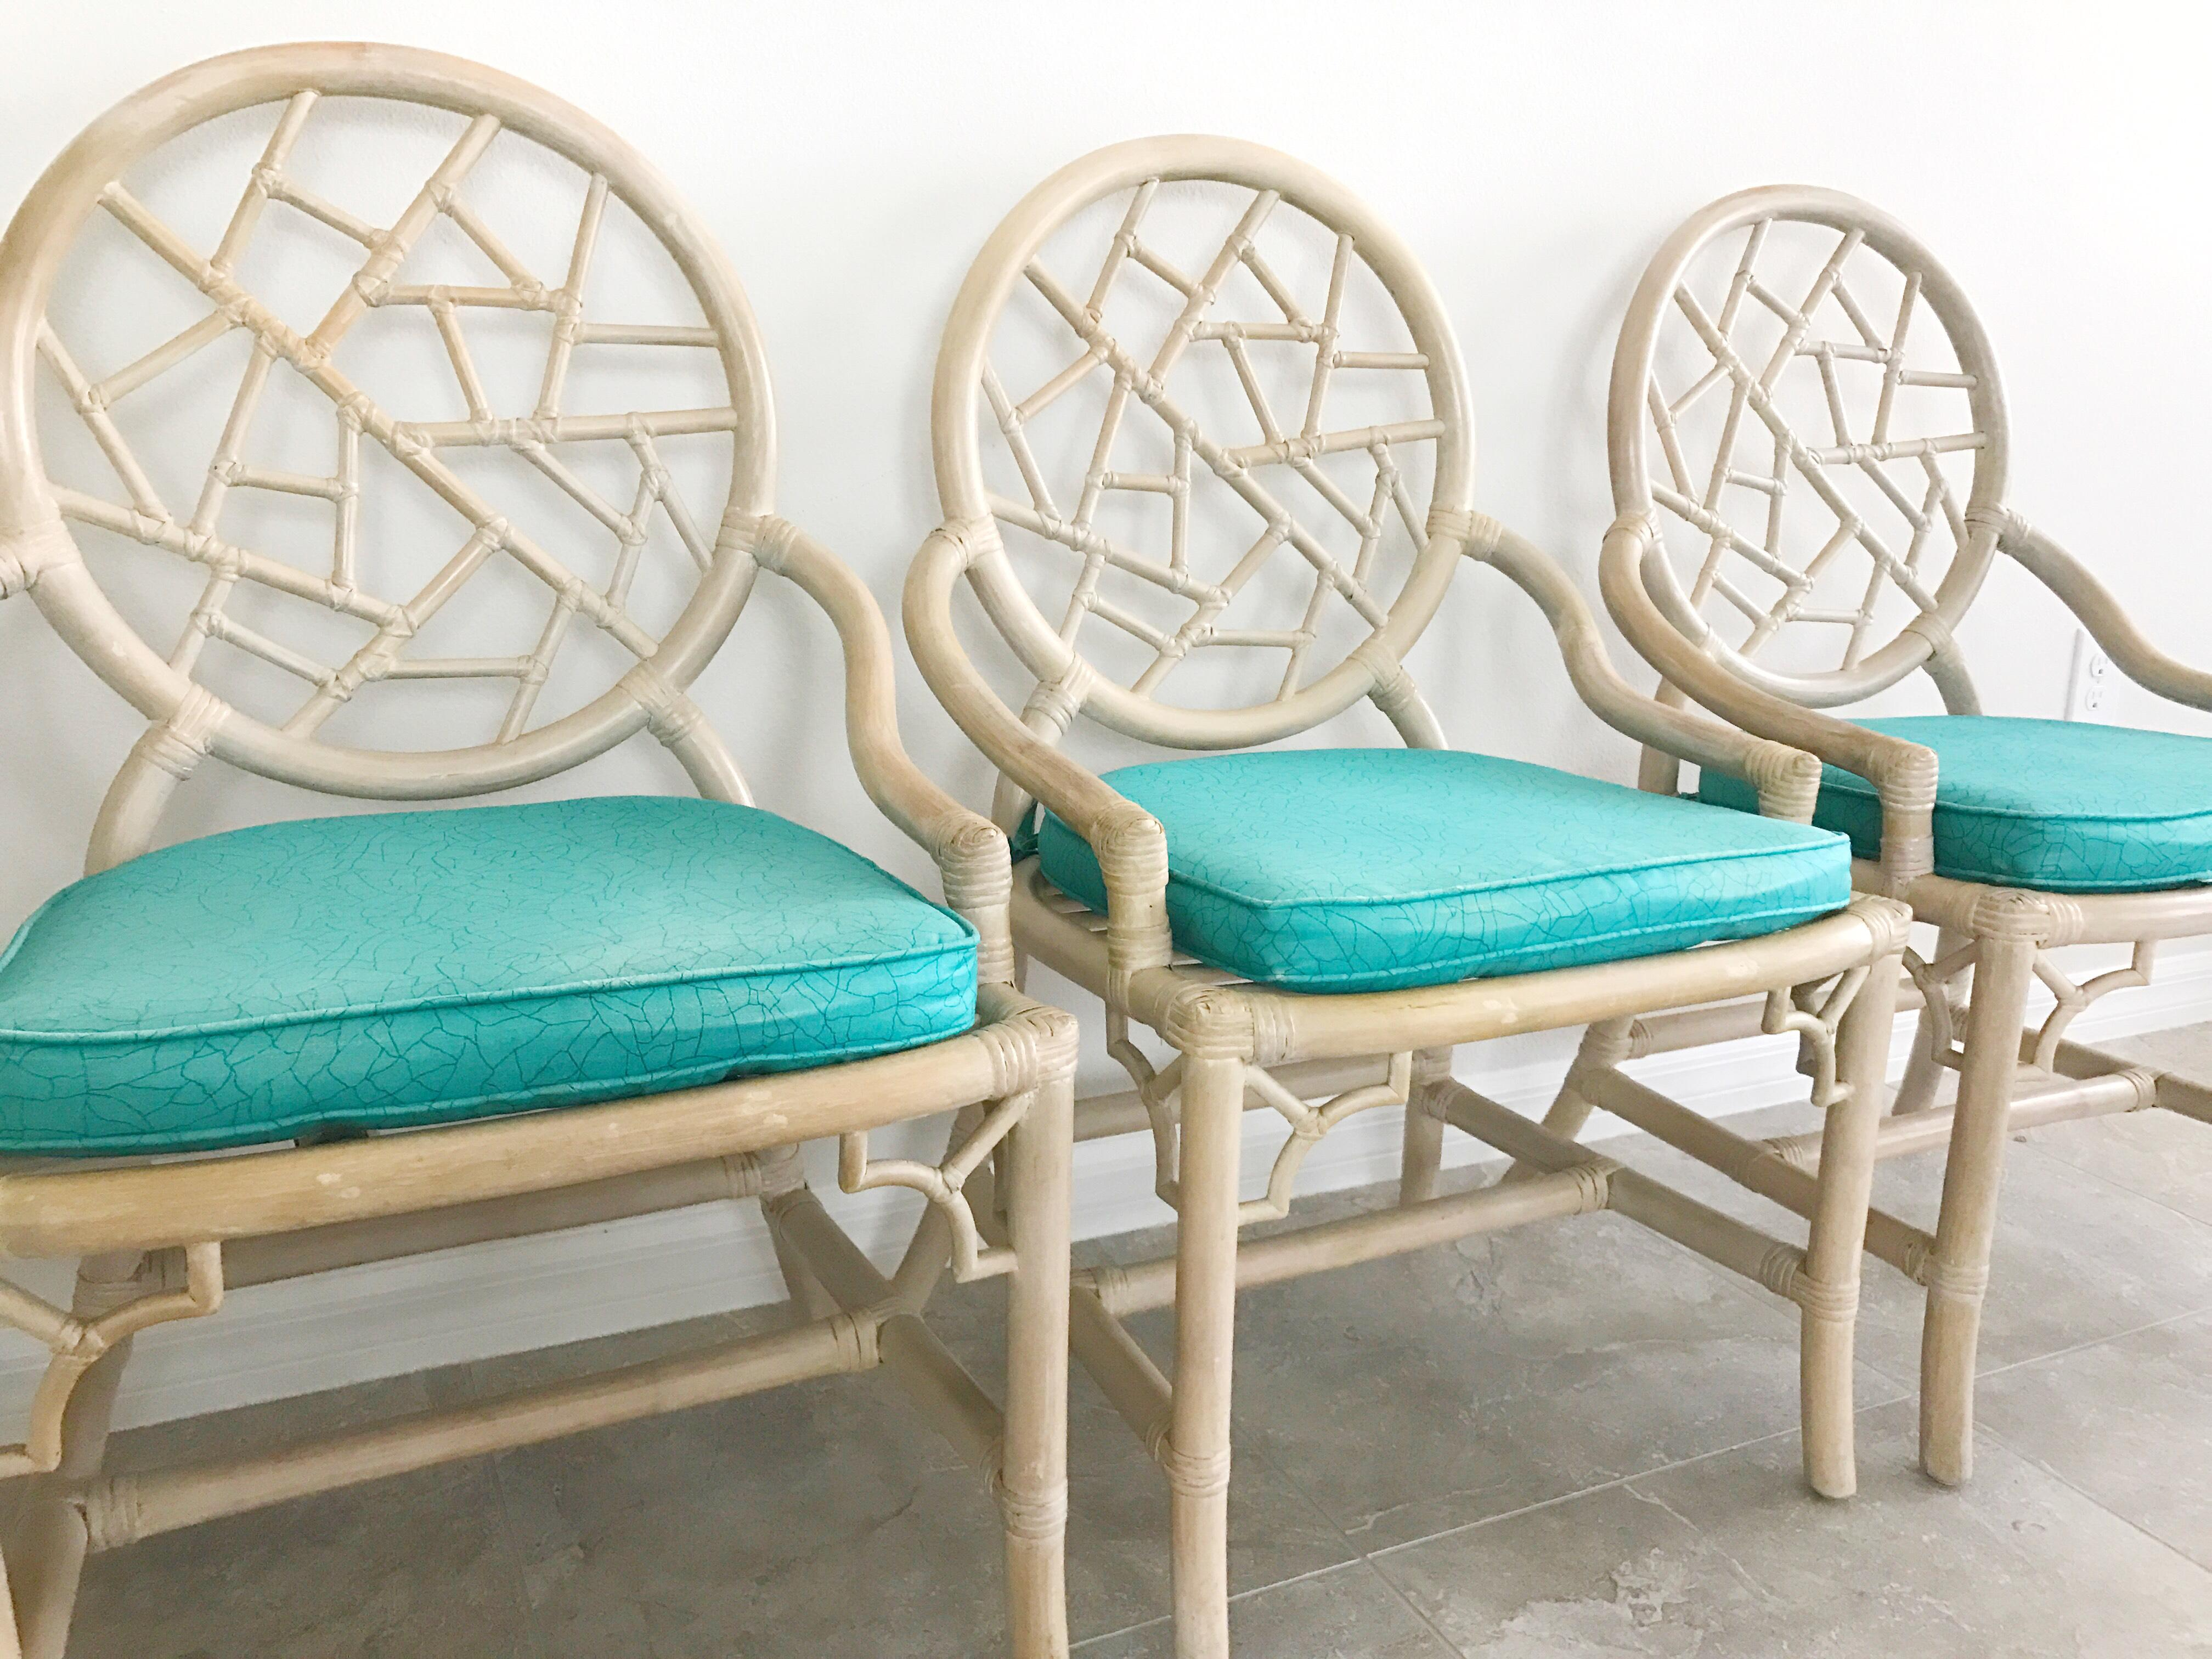 Marvelous Vintage McGuire Cracked Ice Rattan Chairs   Set Of 4   Image 3 Of 7